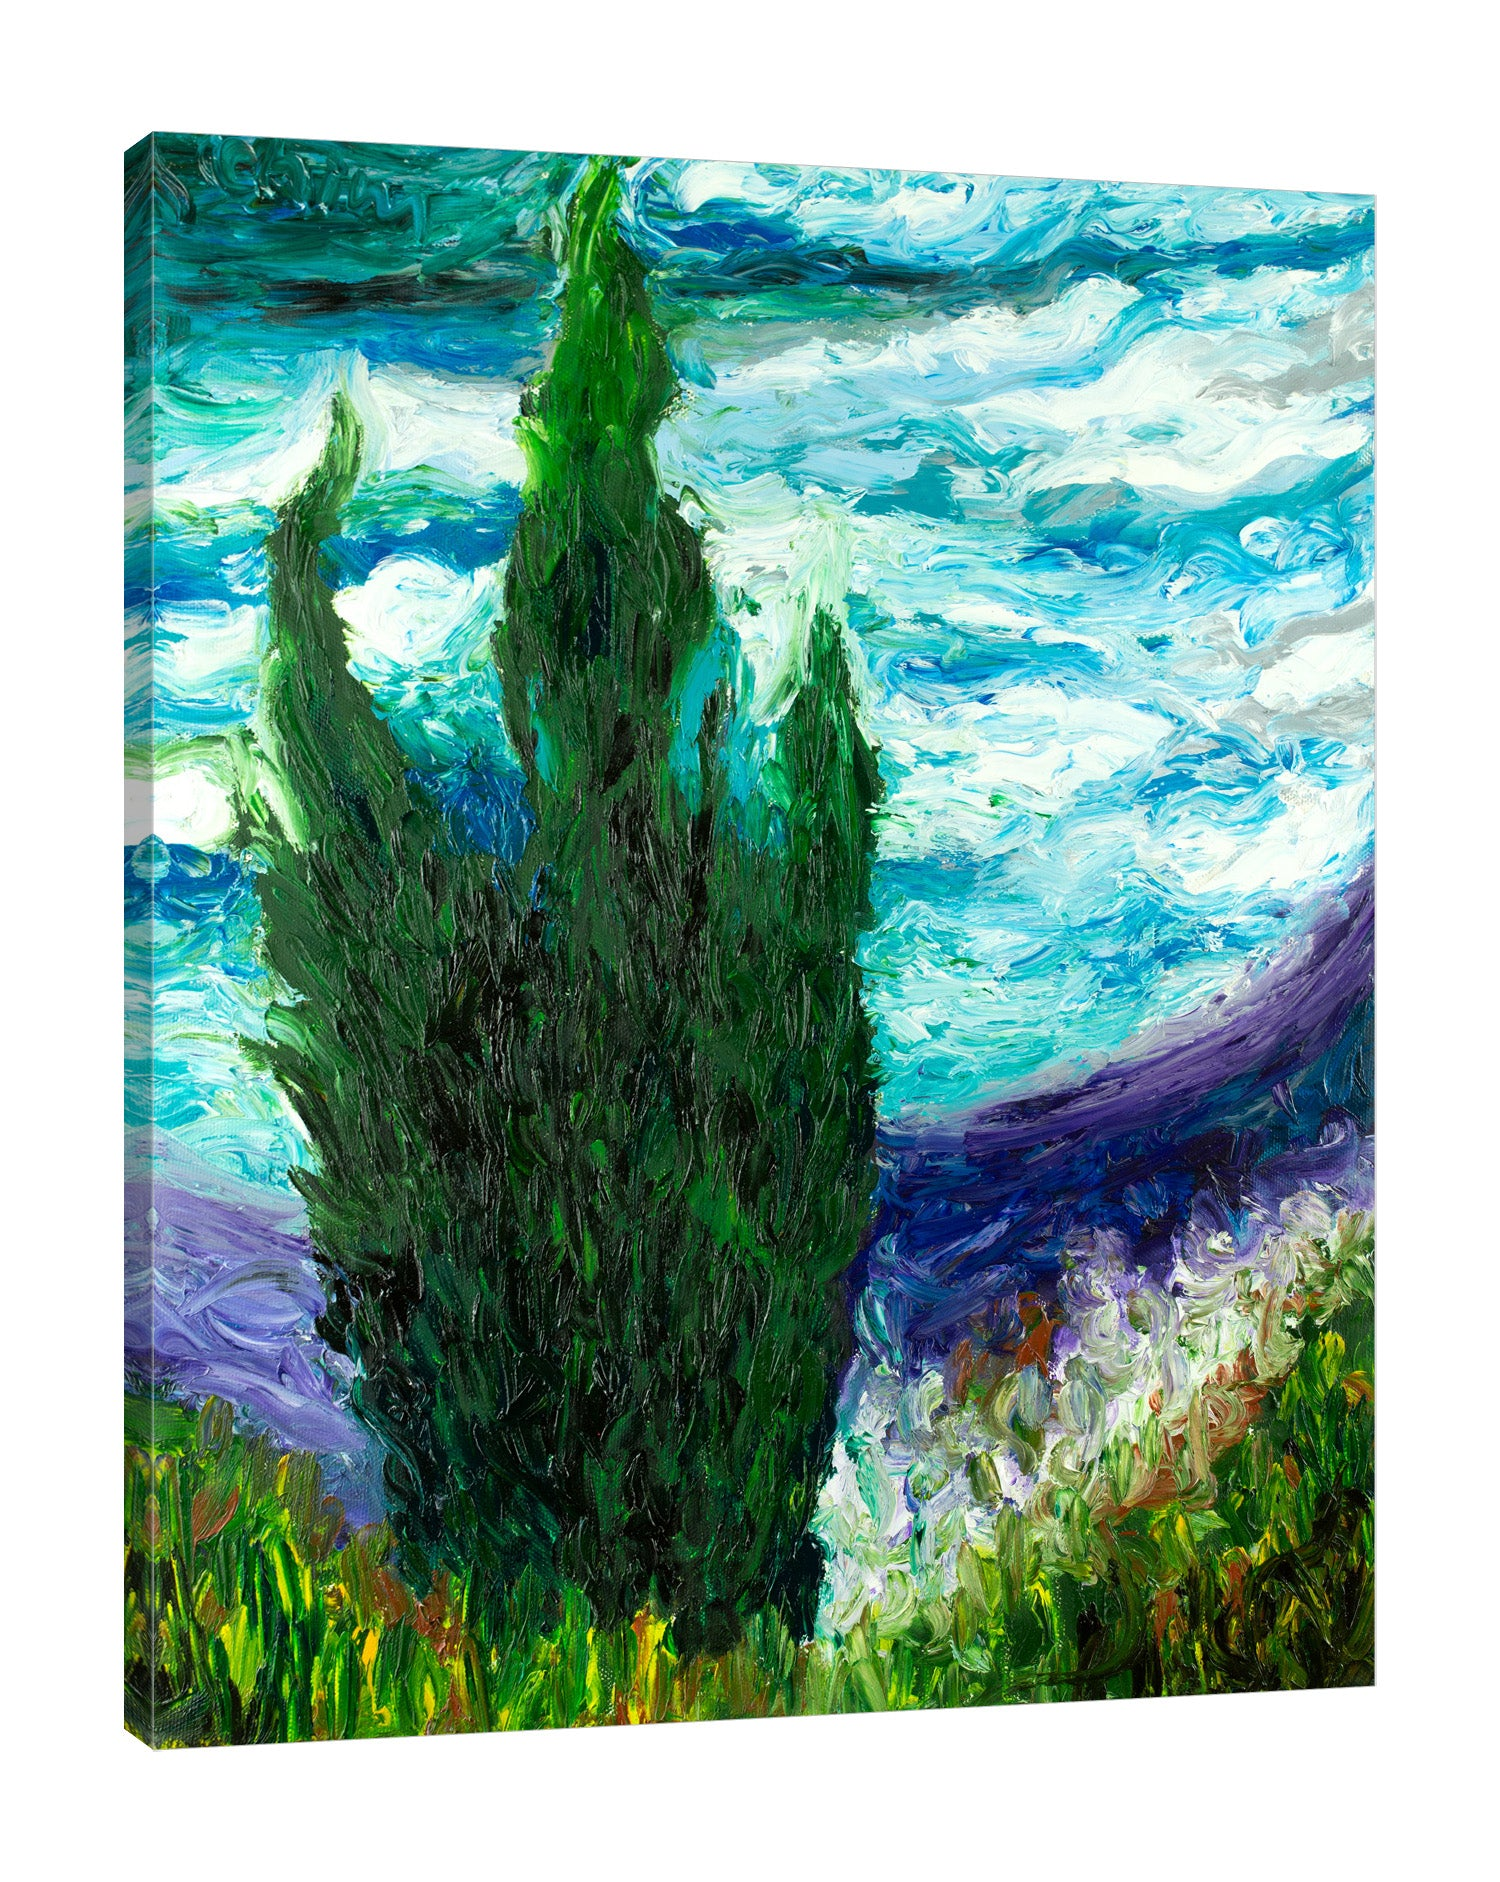 Chiara-Magni,Modern & Contemporary,Landscape & Nature,Finger-paint,trees,tree,mountains,mountain,grass,blue,skies,clouds,portrait,